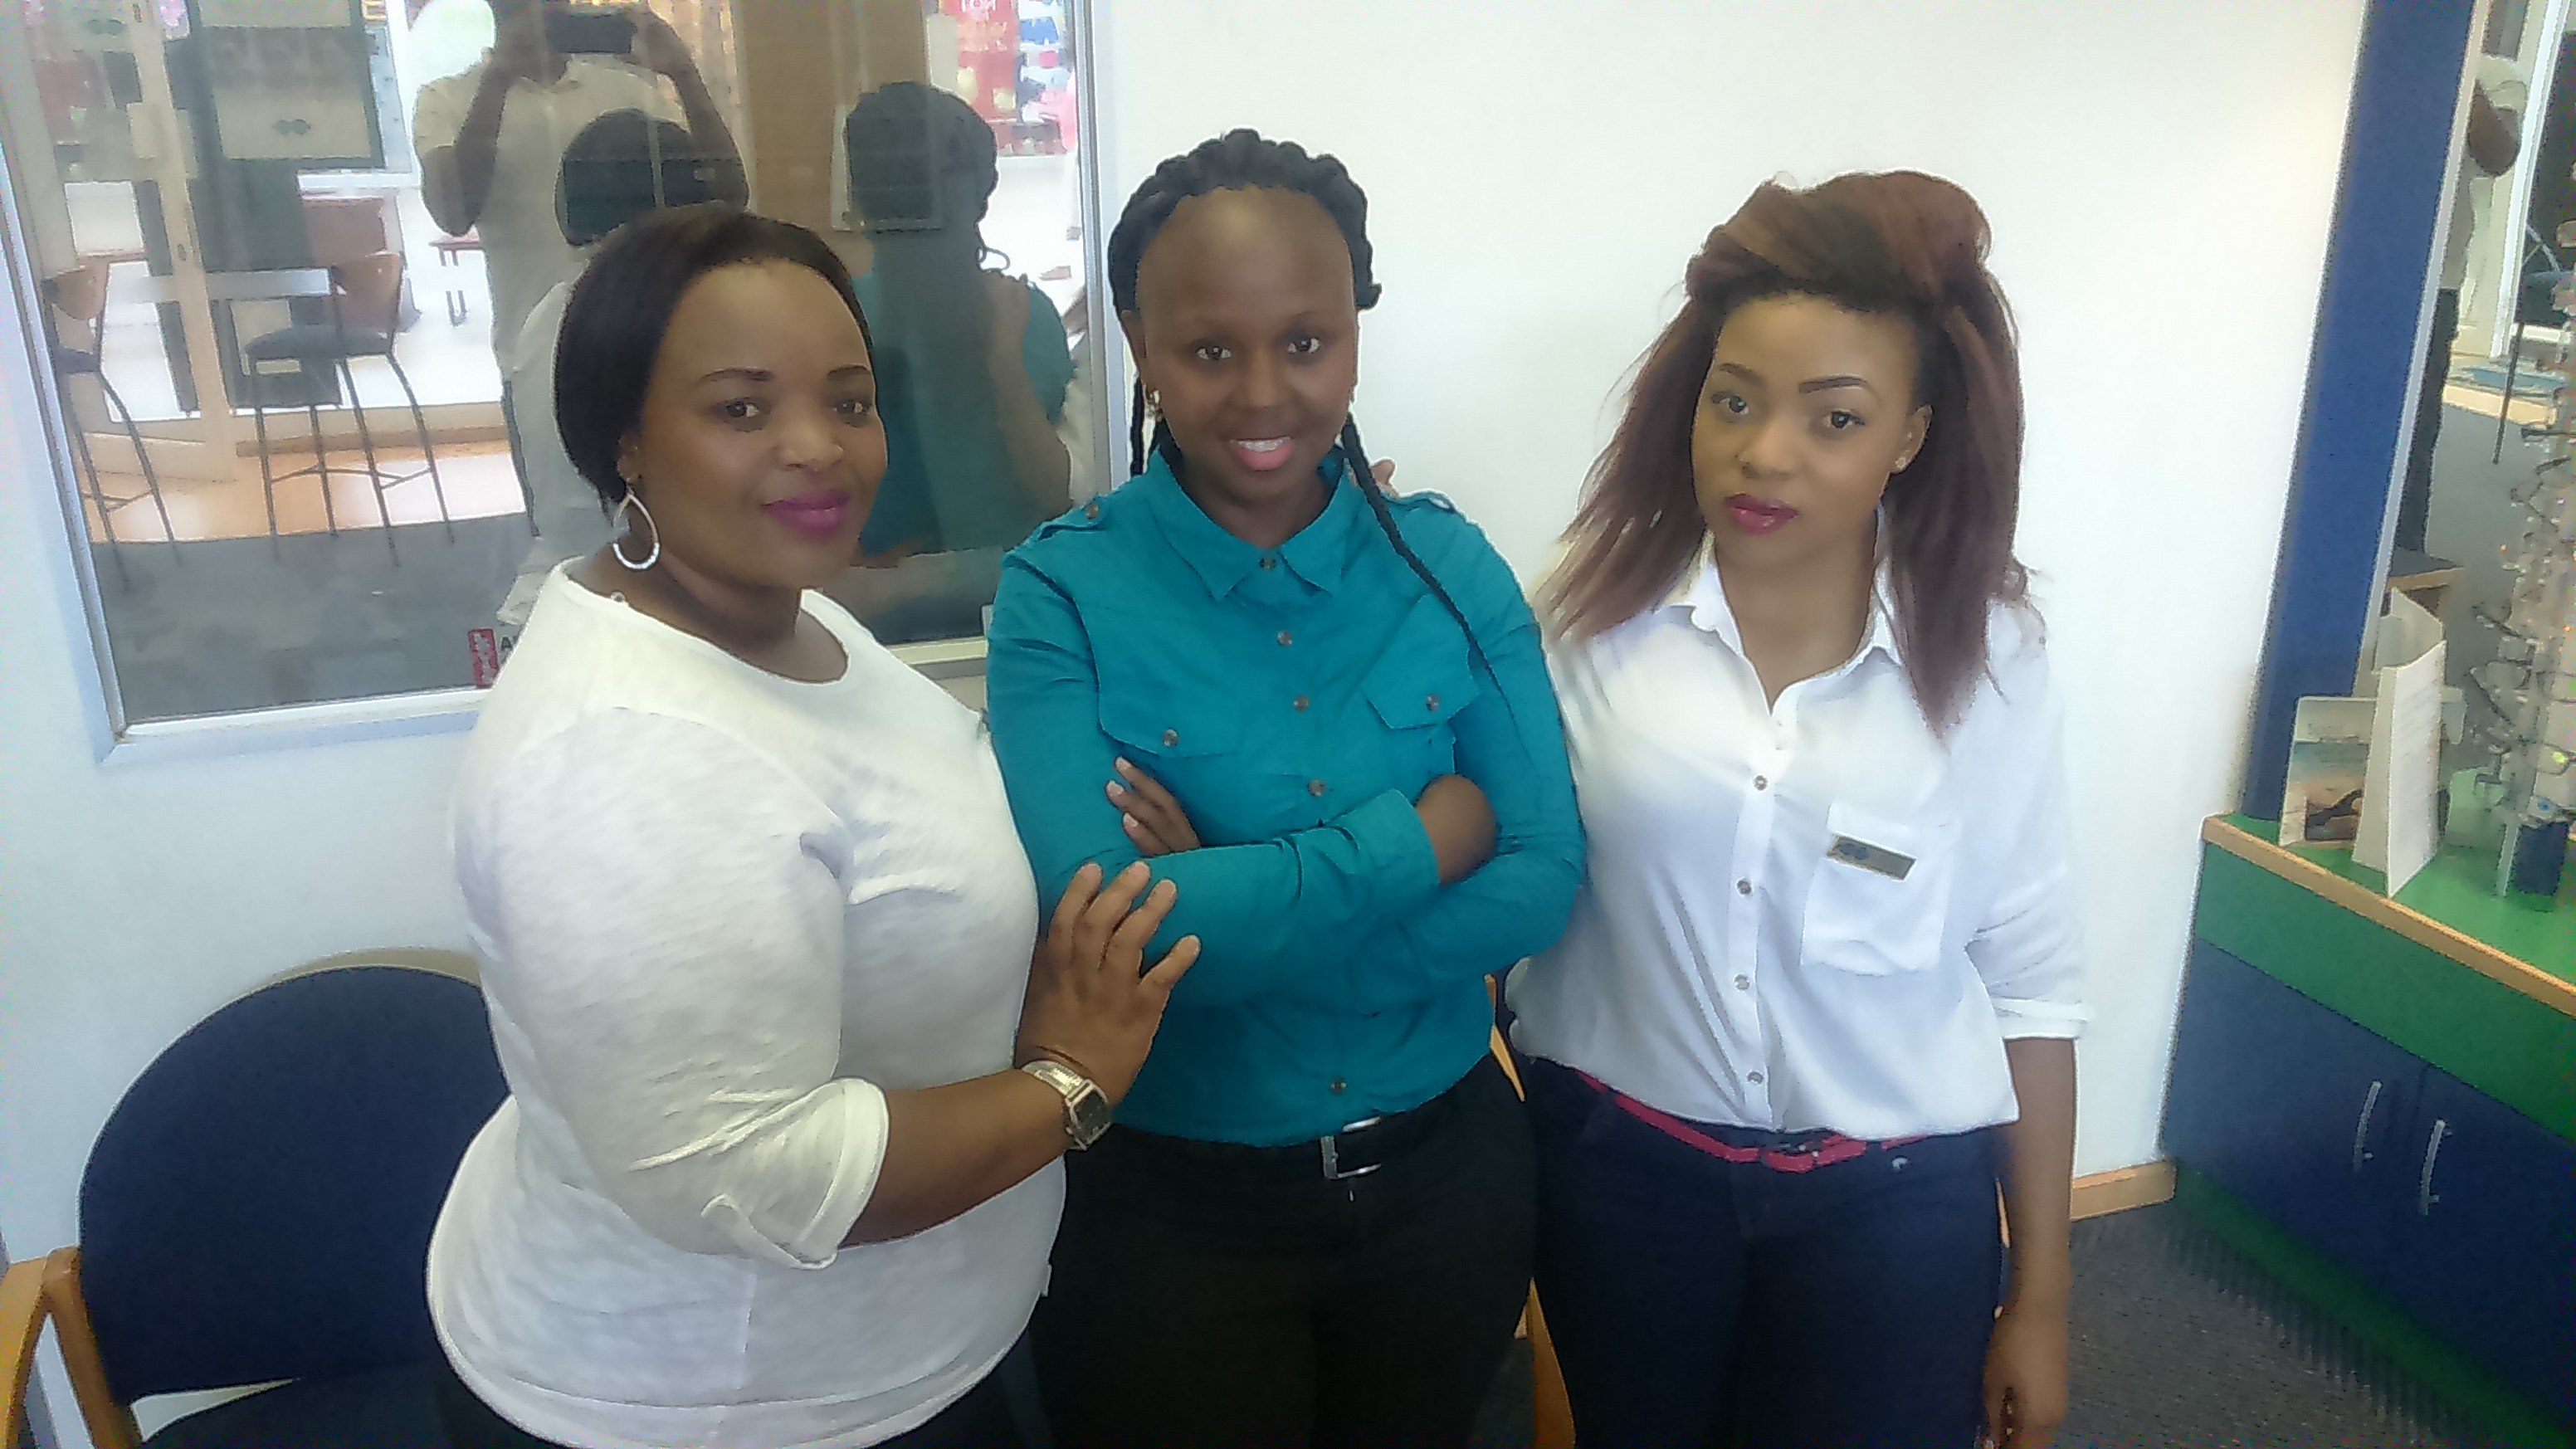 Meet our lovely staff, from left to right: Hlengiwe, Noxolo and Khauhelo